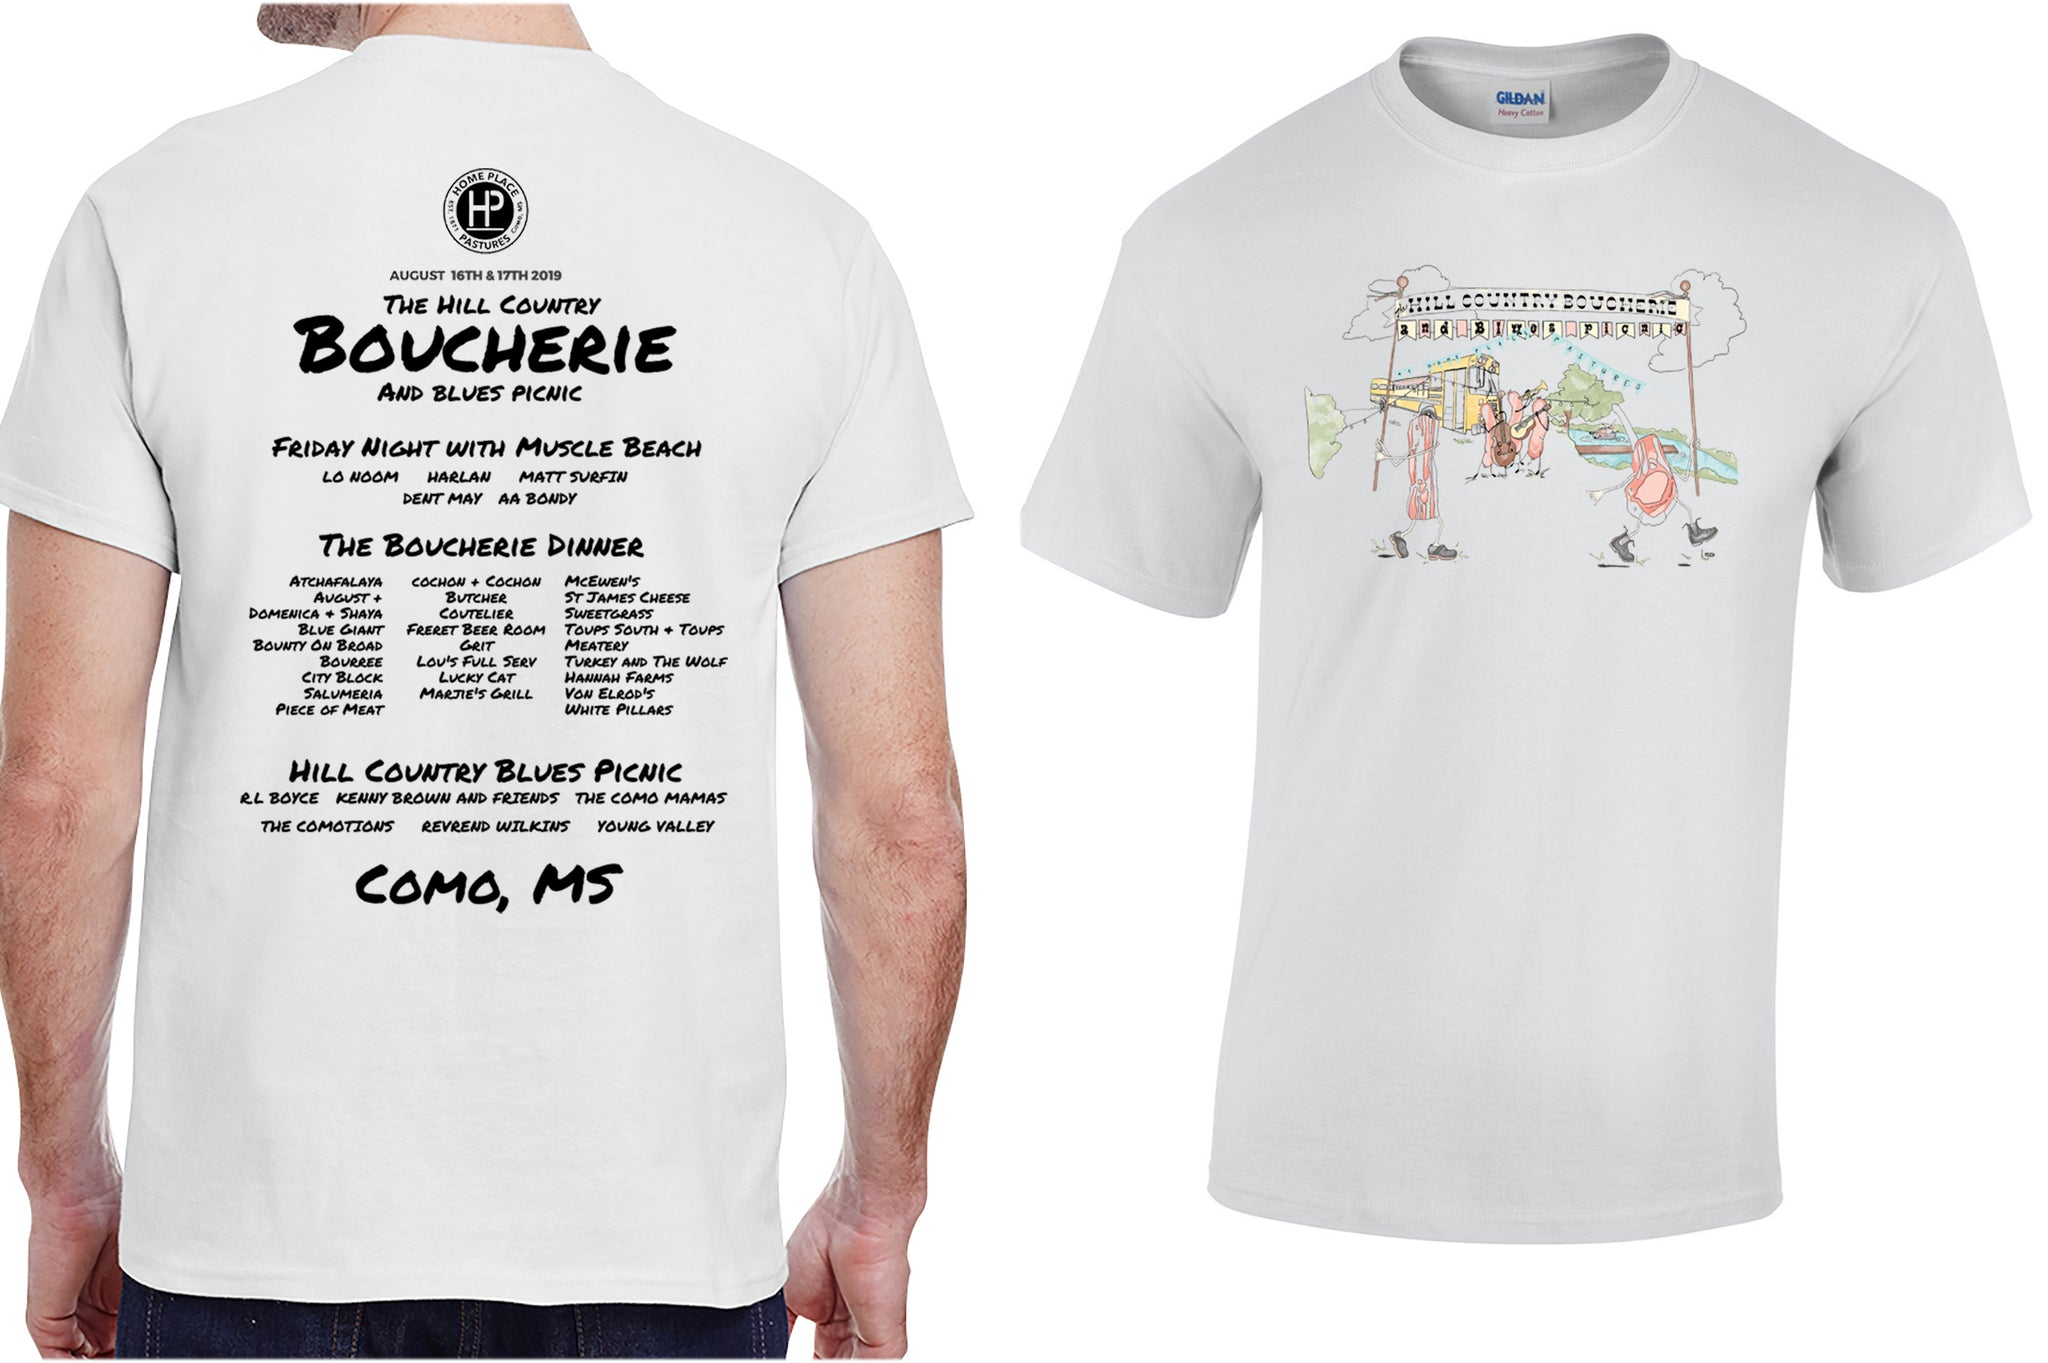 Boucherie 2019 T-Shirt